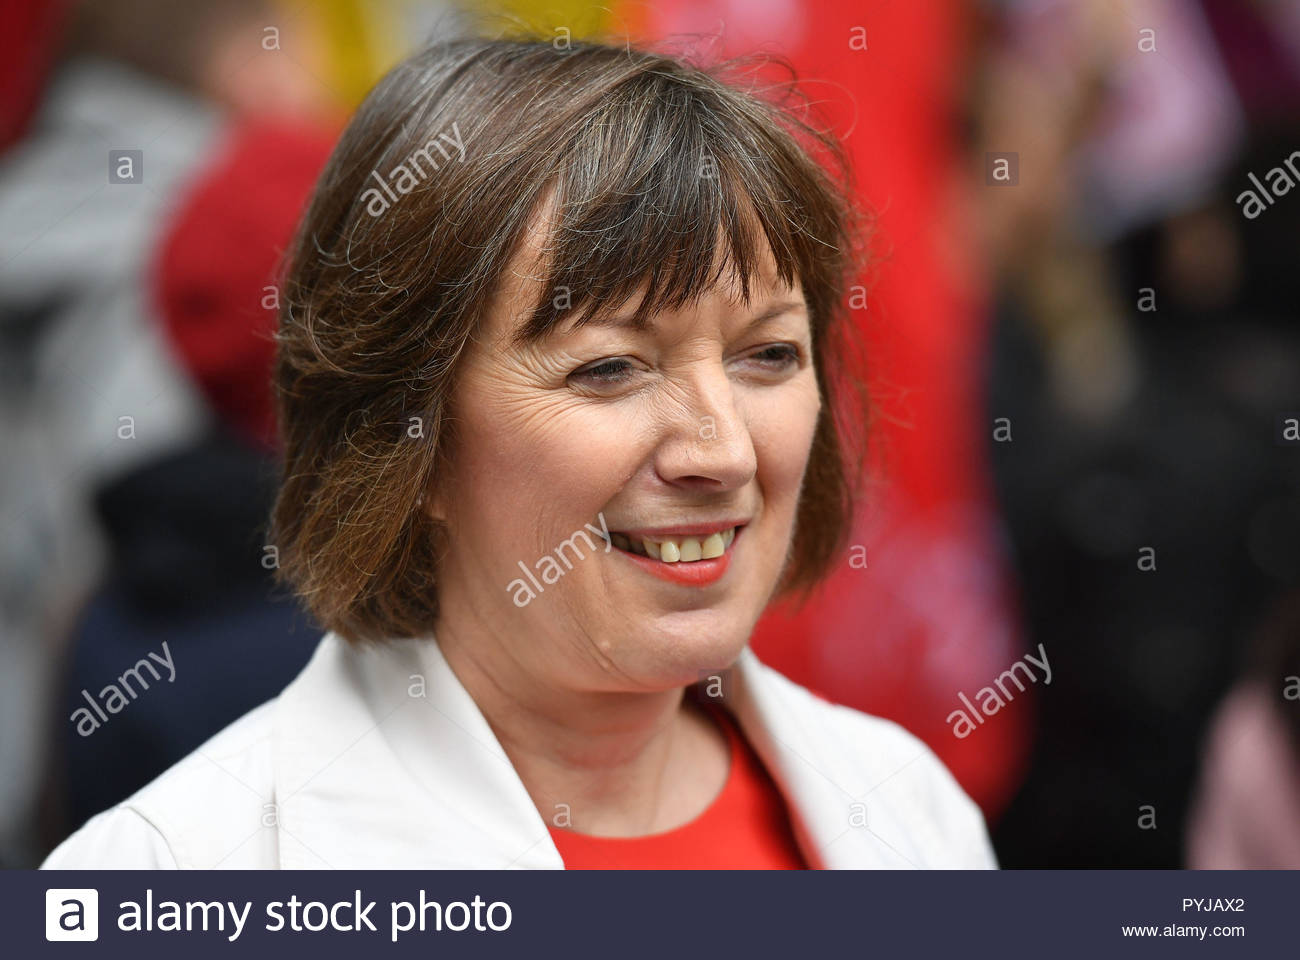 File photo dated 04/10/18 of TUC General Secretary Frances O'Grady, who admitted she has shopped at online retail giant Amazon, despite concerns over its workers. - Stock Image